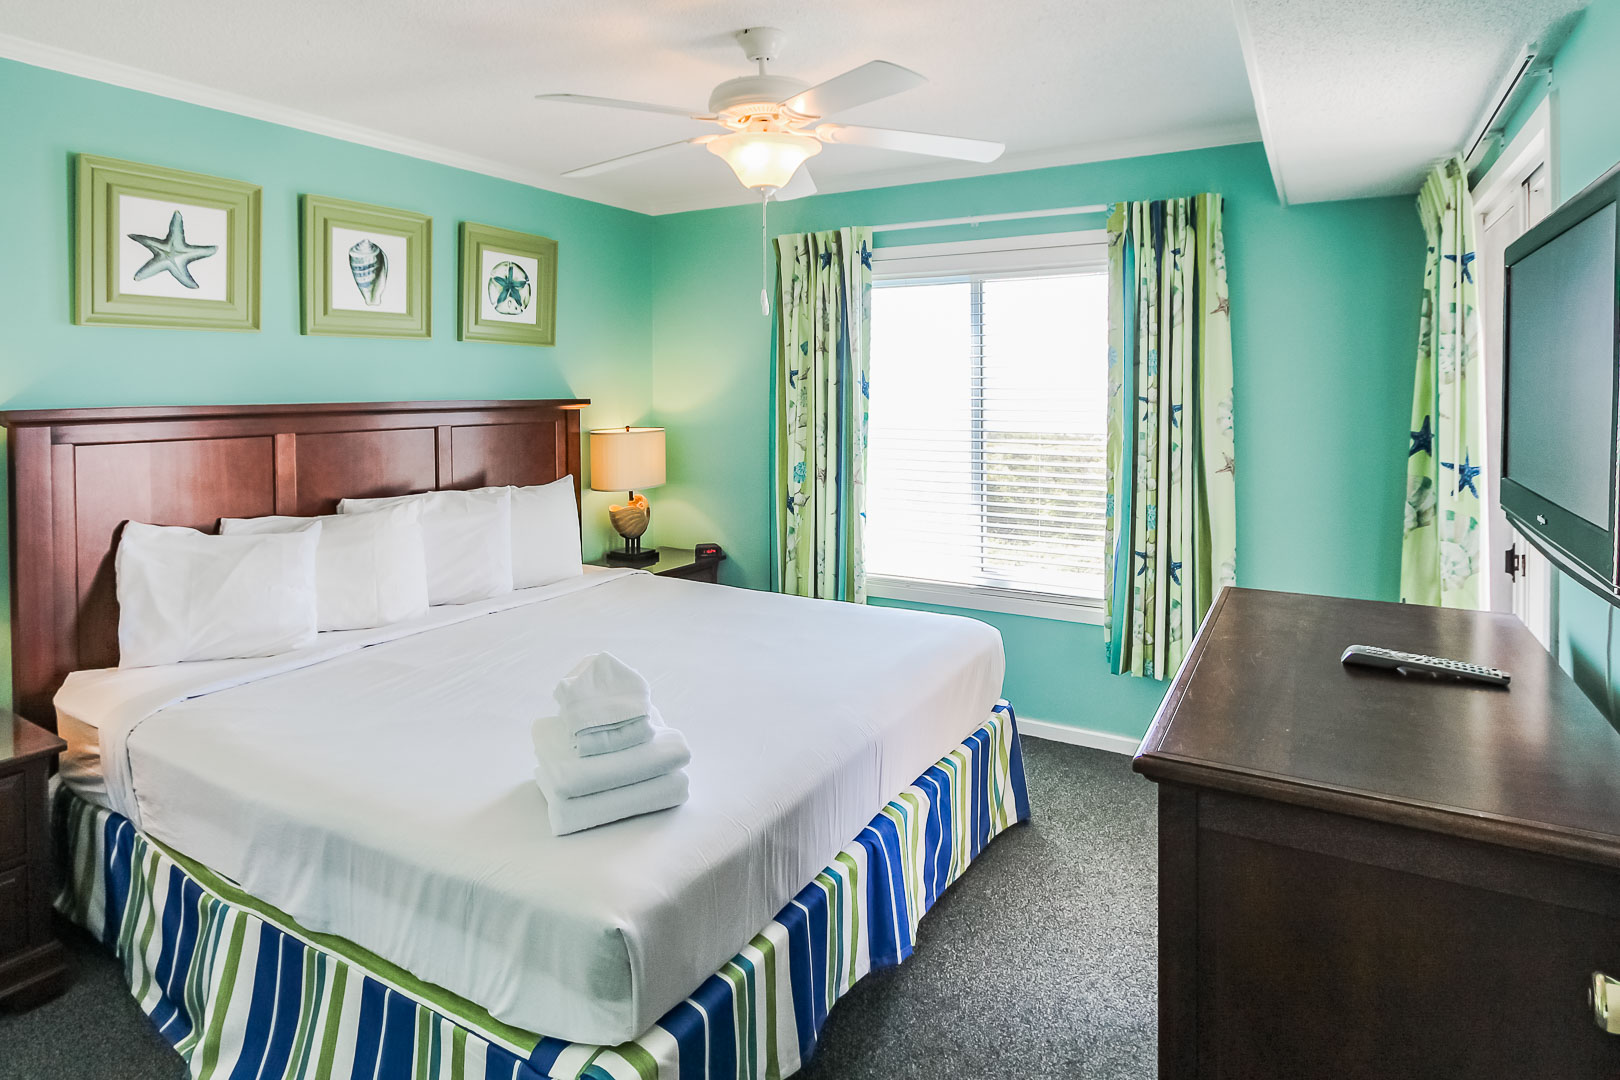 A refreshing master bedroom at VRI's A Place at the Beach III in North Carolina